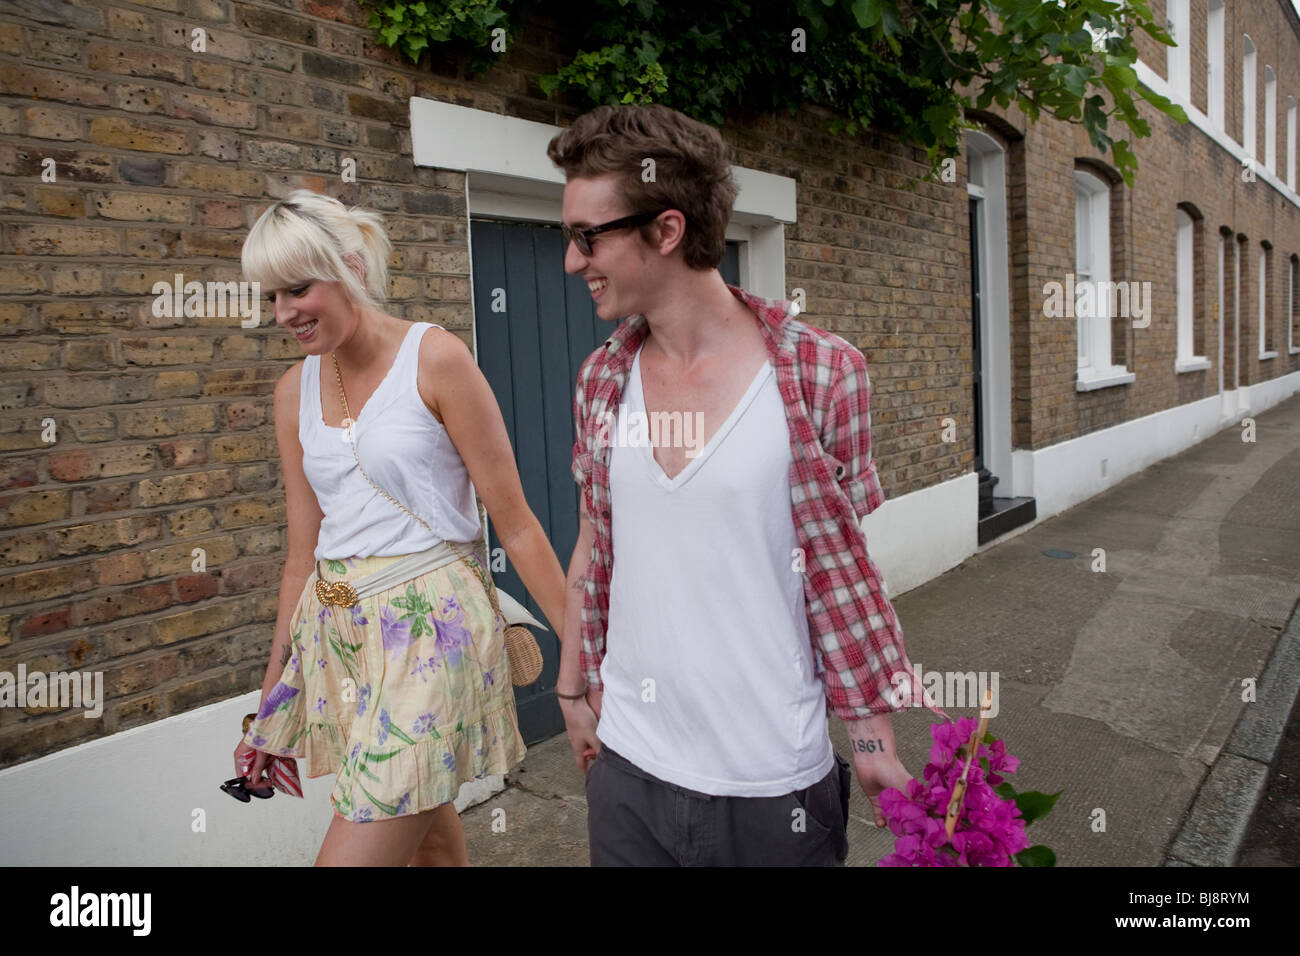 Couple walking home de marché aux fleurs en été, Londres, Angleterre, Royaume-Uni, Europe Photo Stock